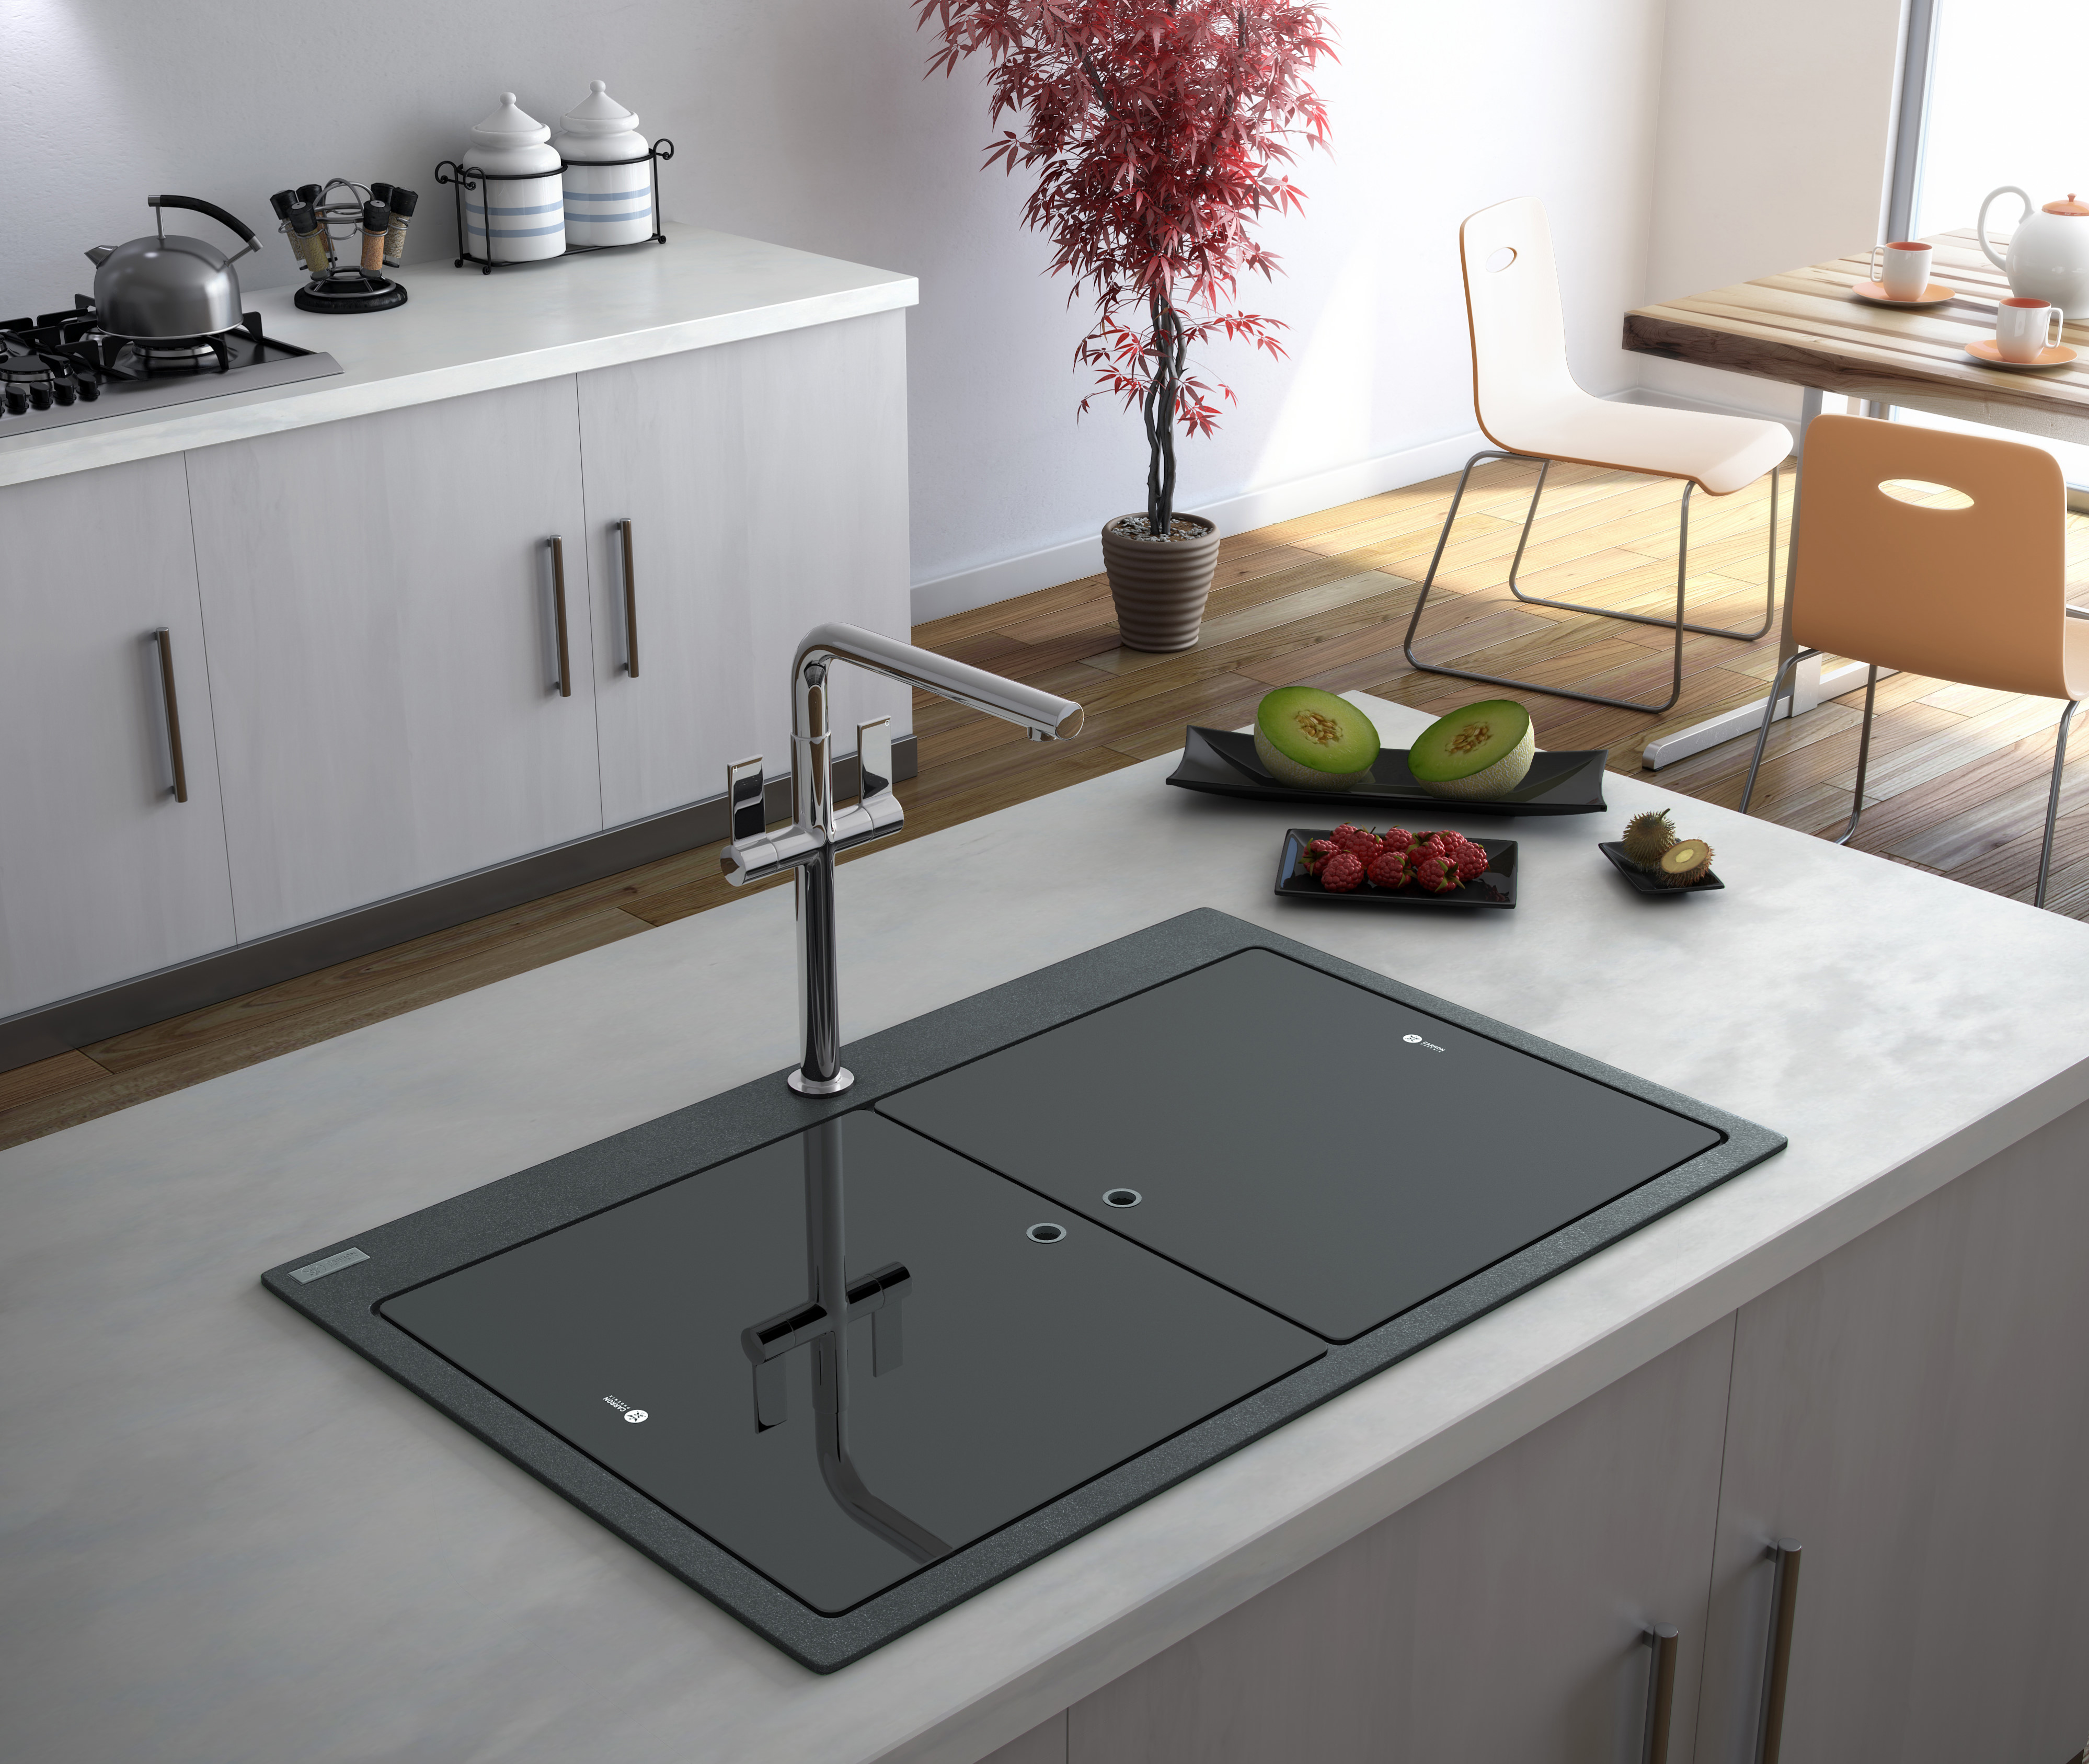 Marble Sink Kitchen : Samoa -the brand new granite sink from Carron Phoenix that?s hard ...